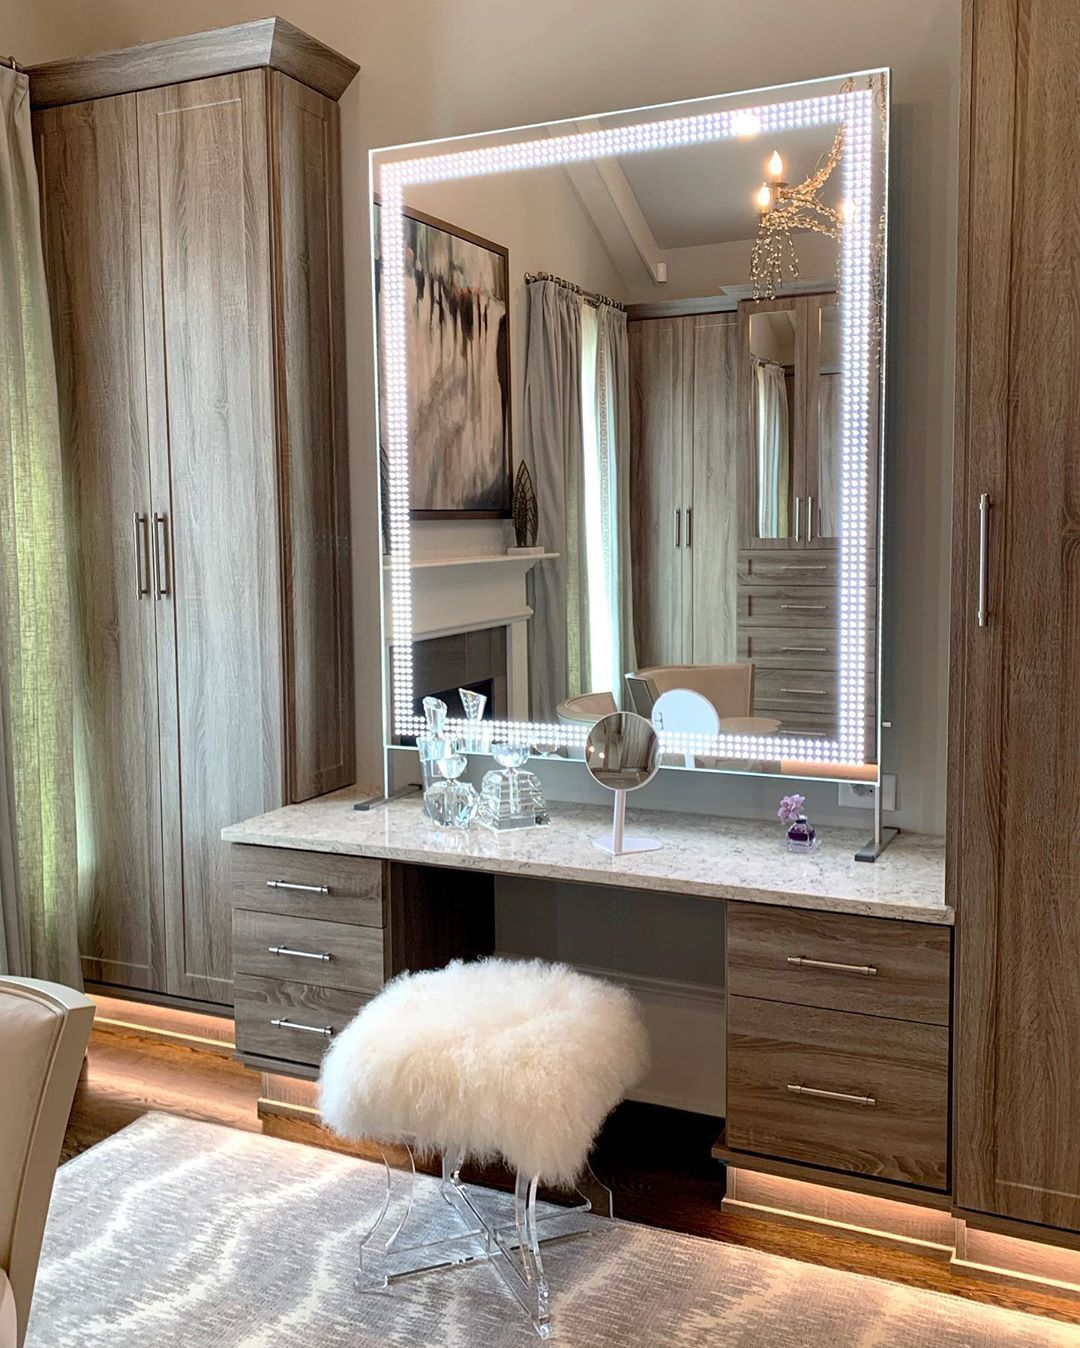 How To Choose The Best Lighted Full Length Vanity Mirror Glamcor